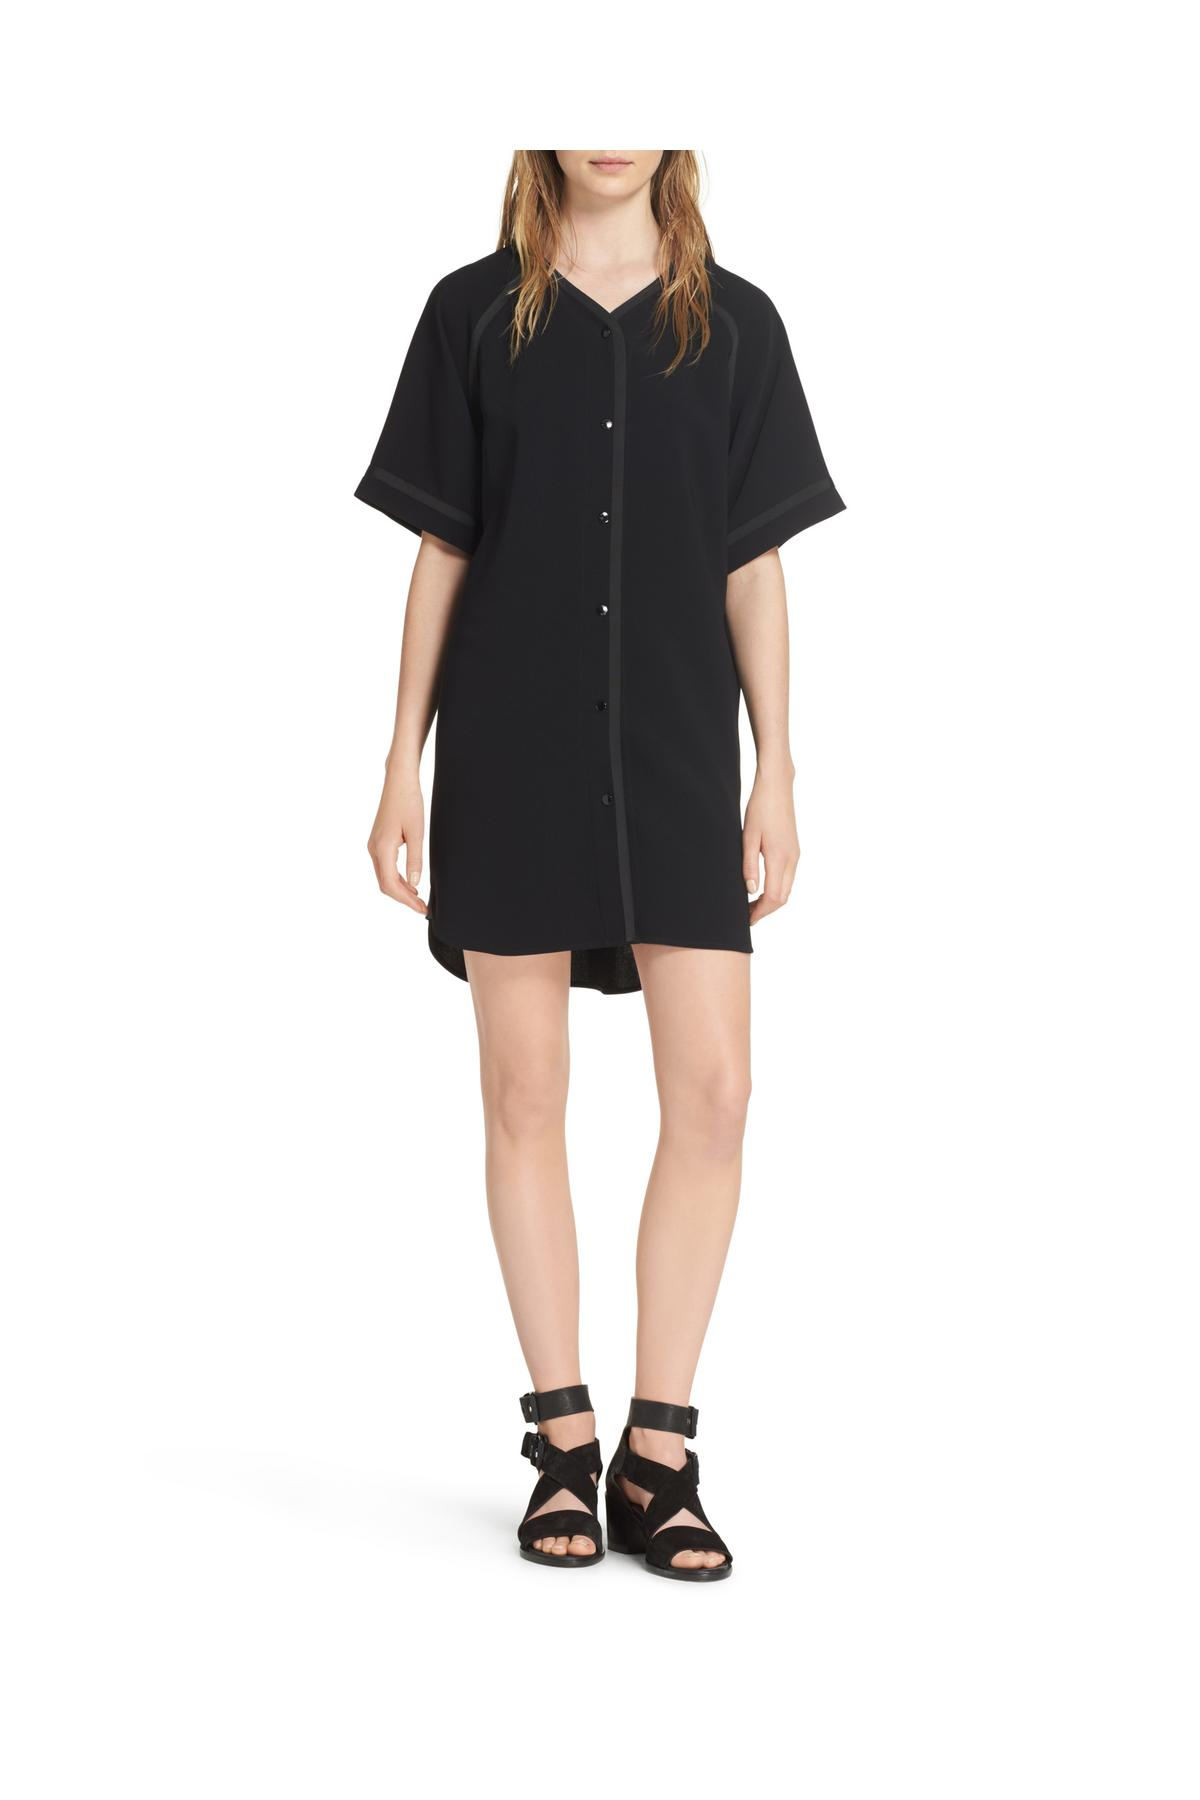 RAG & BONE VARSITY DRESS